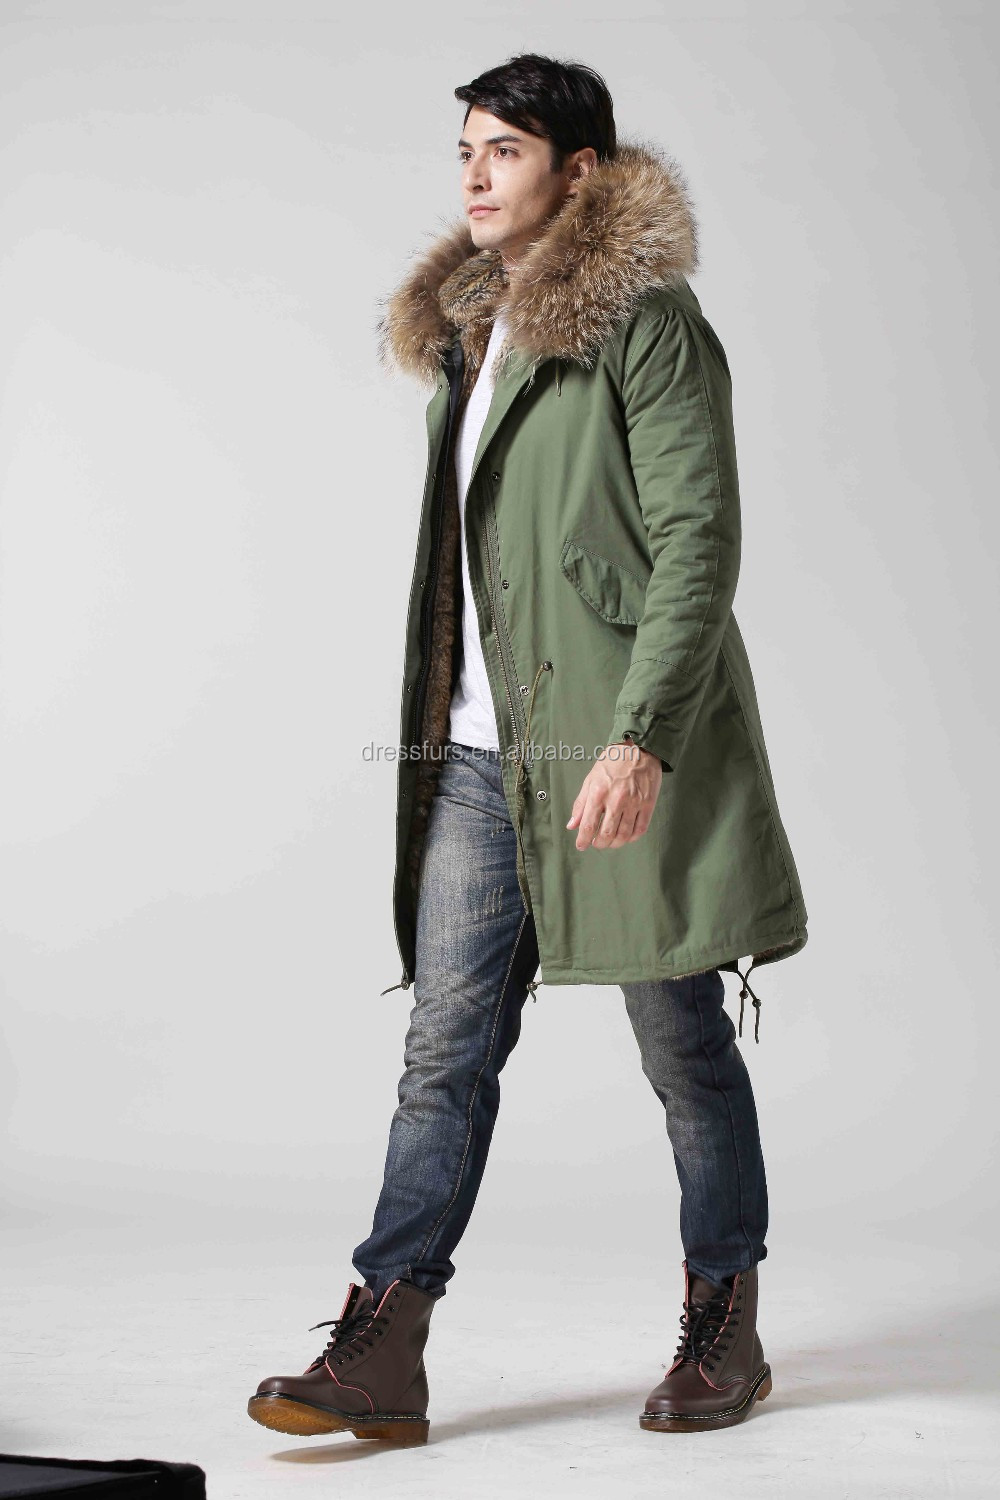 wholesale man parka coat faux fur lining raccoon fur hood trim by fast shipping